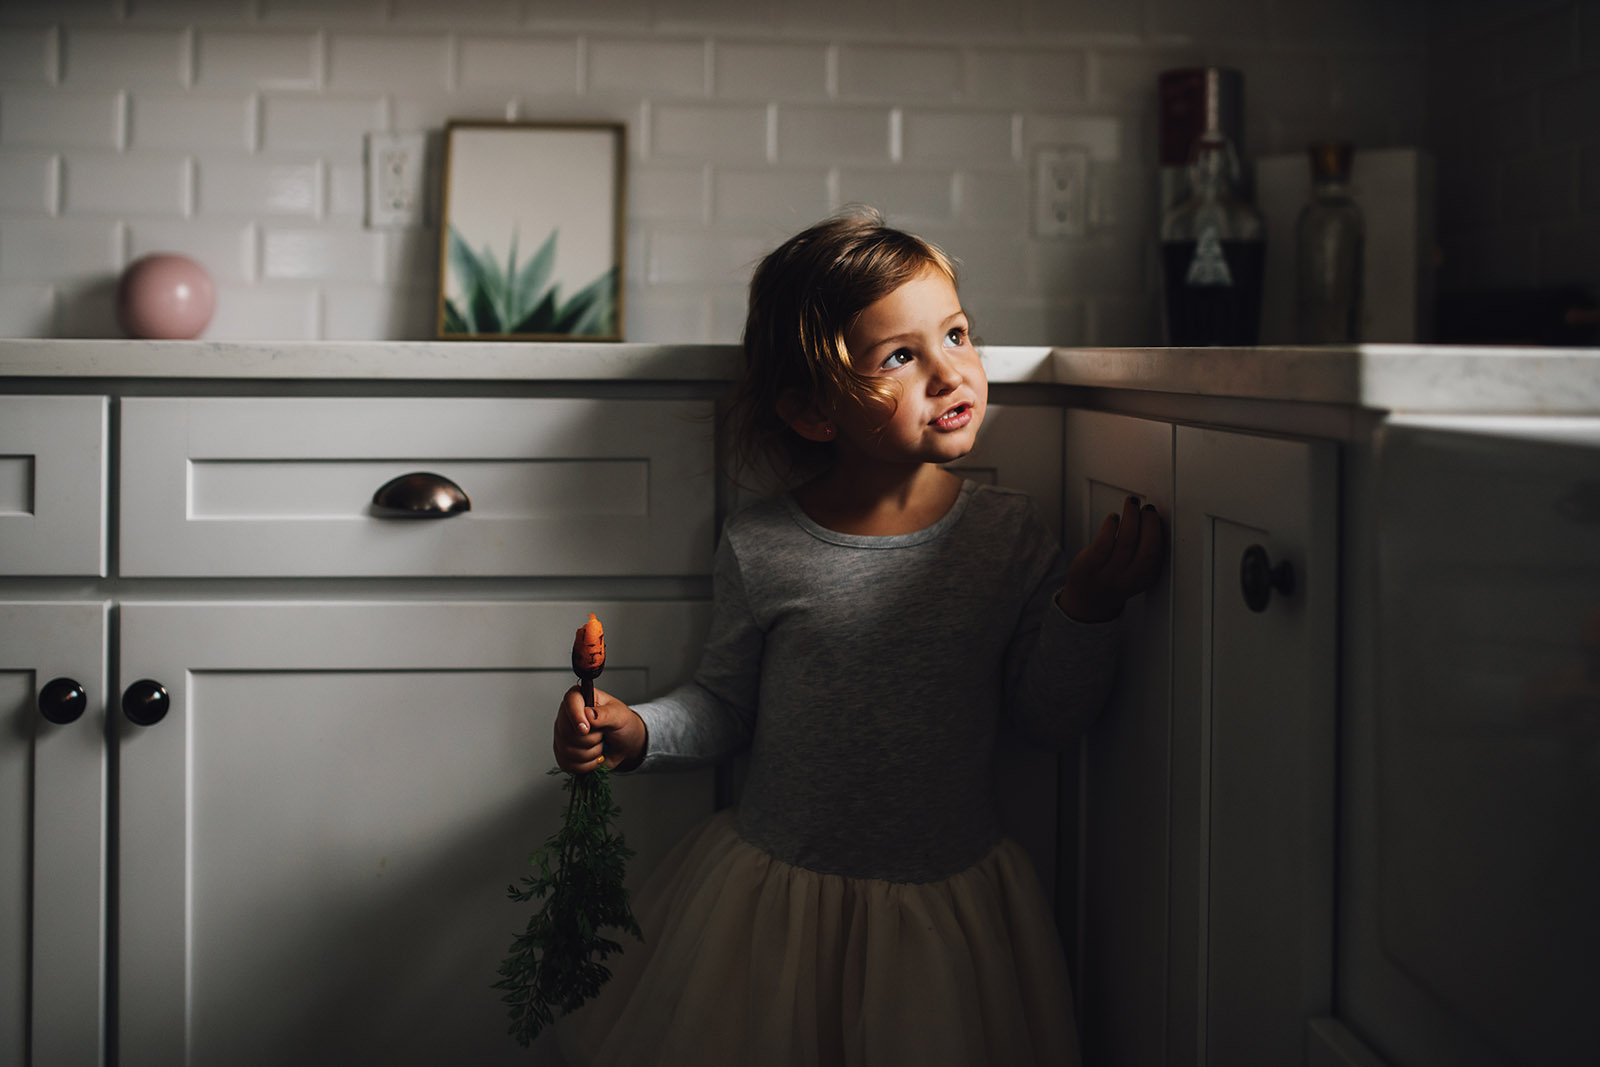 Creative use of window light, little girl in small pocket of kitchen light